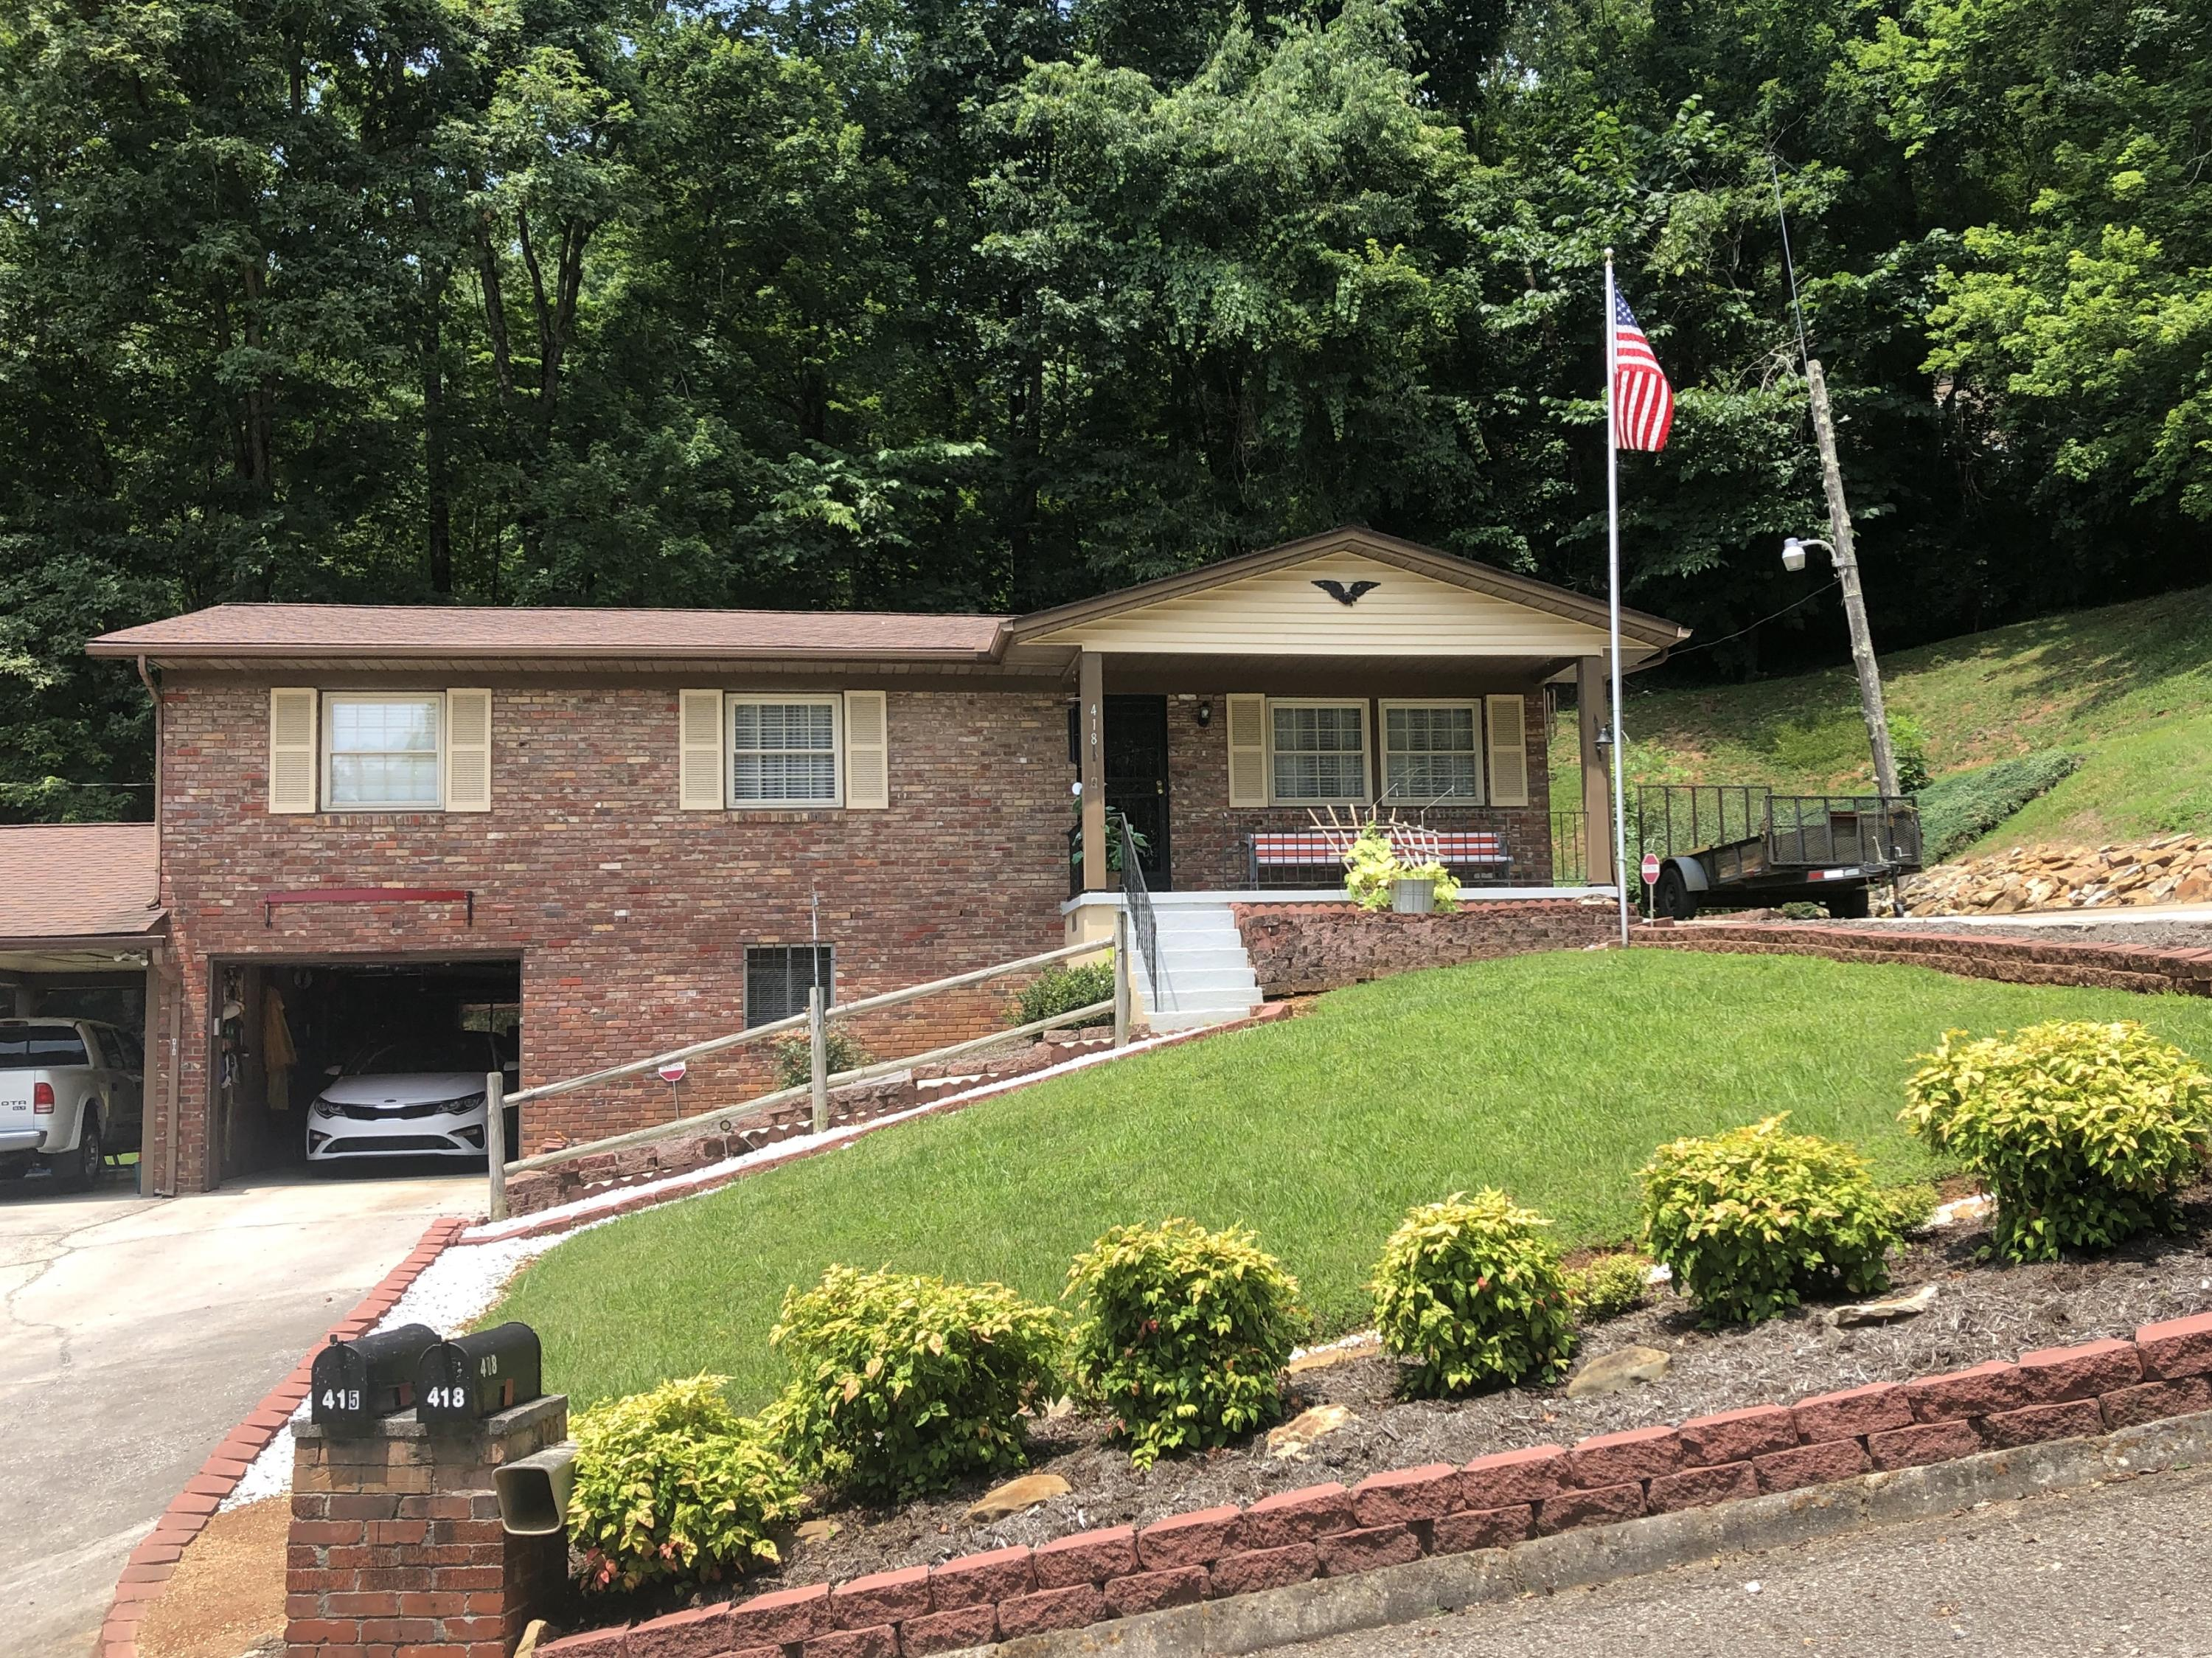 20190616005330714763000000-o Clinton anderson county homes for sale